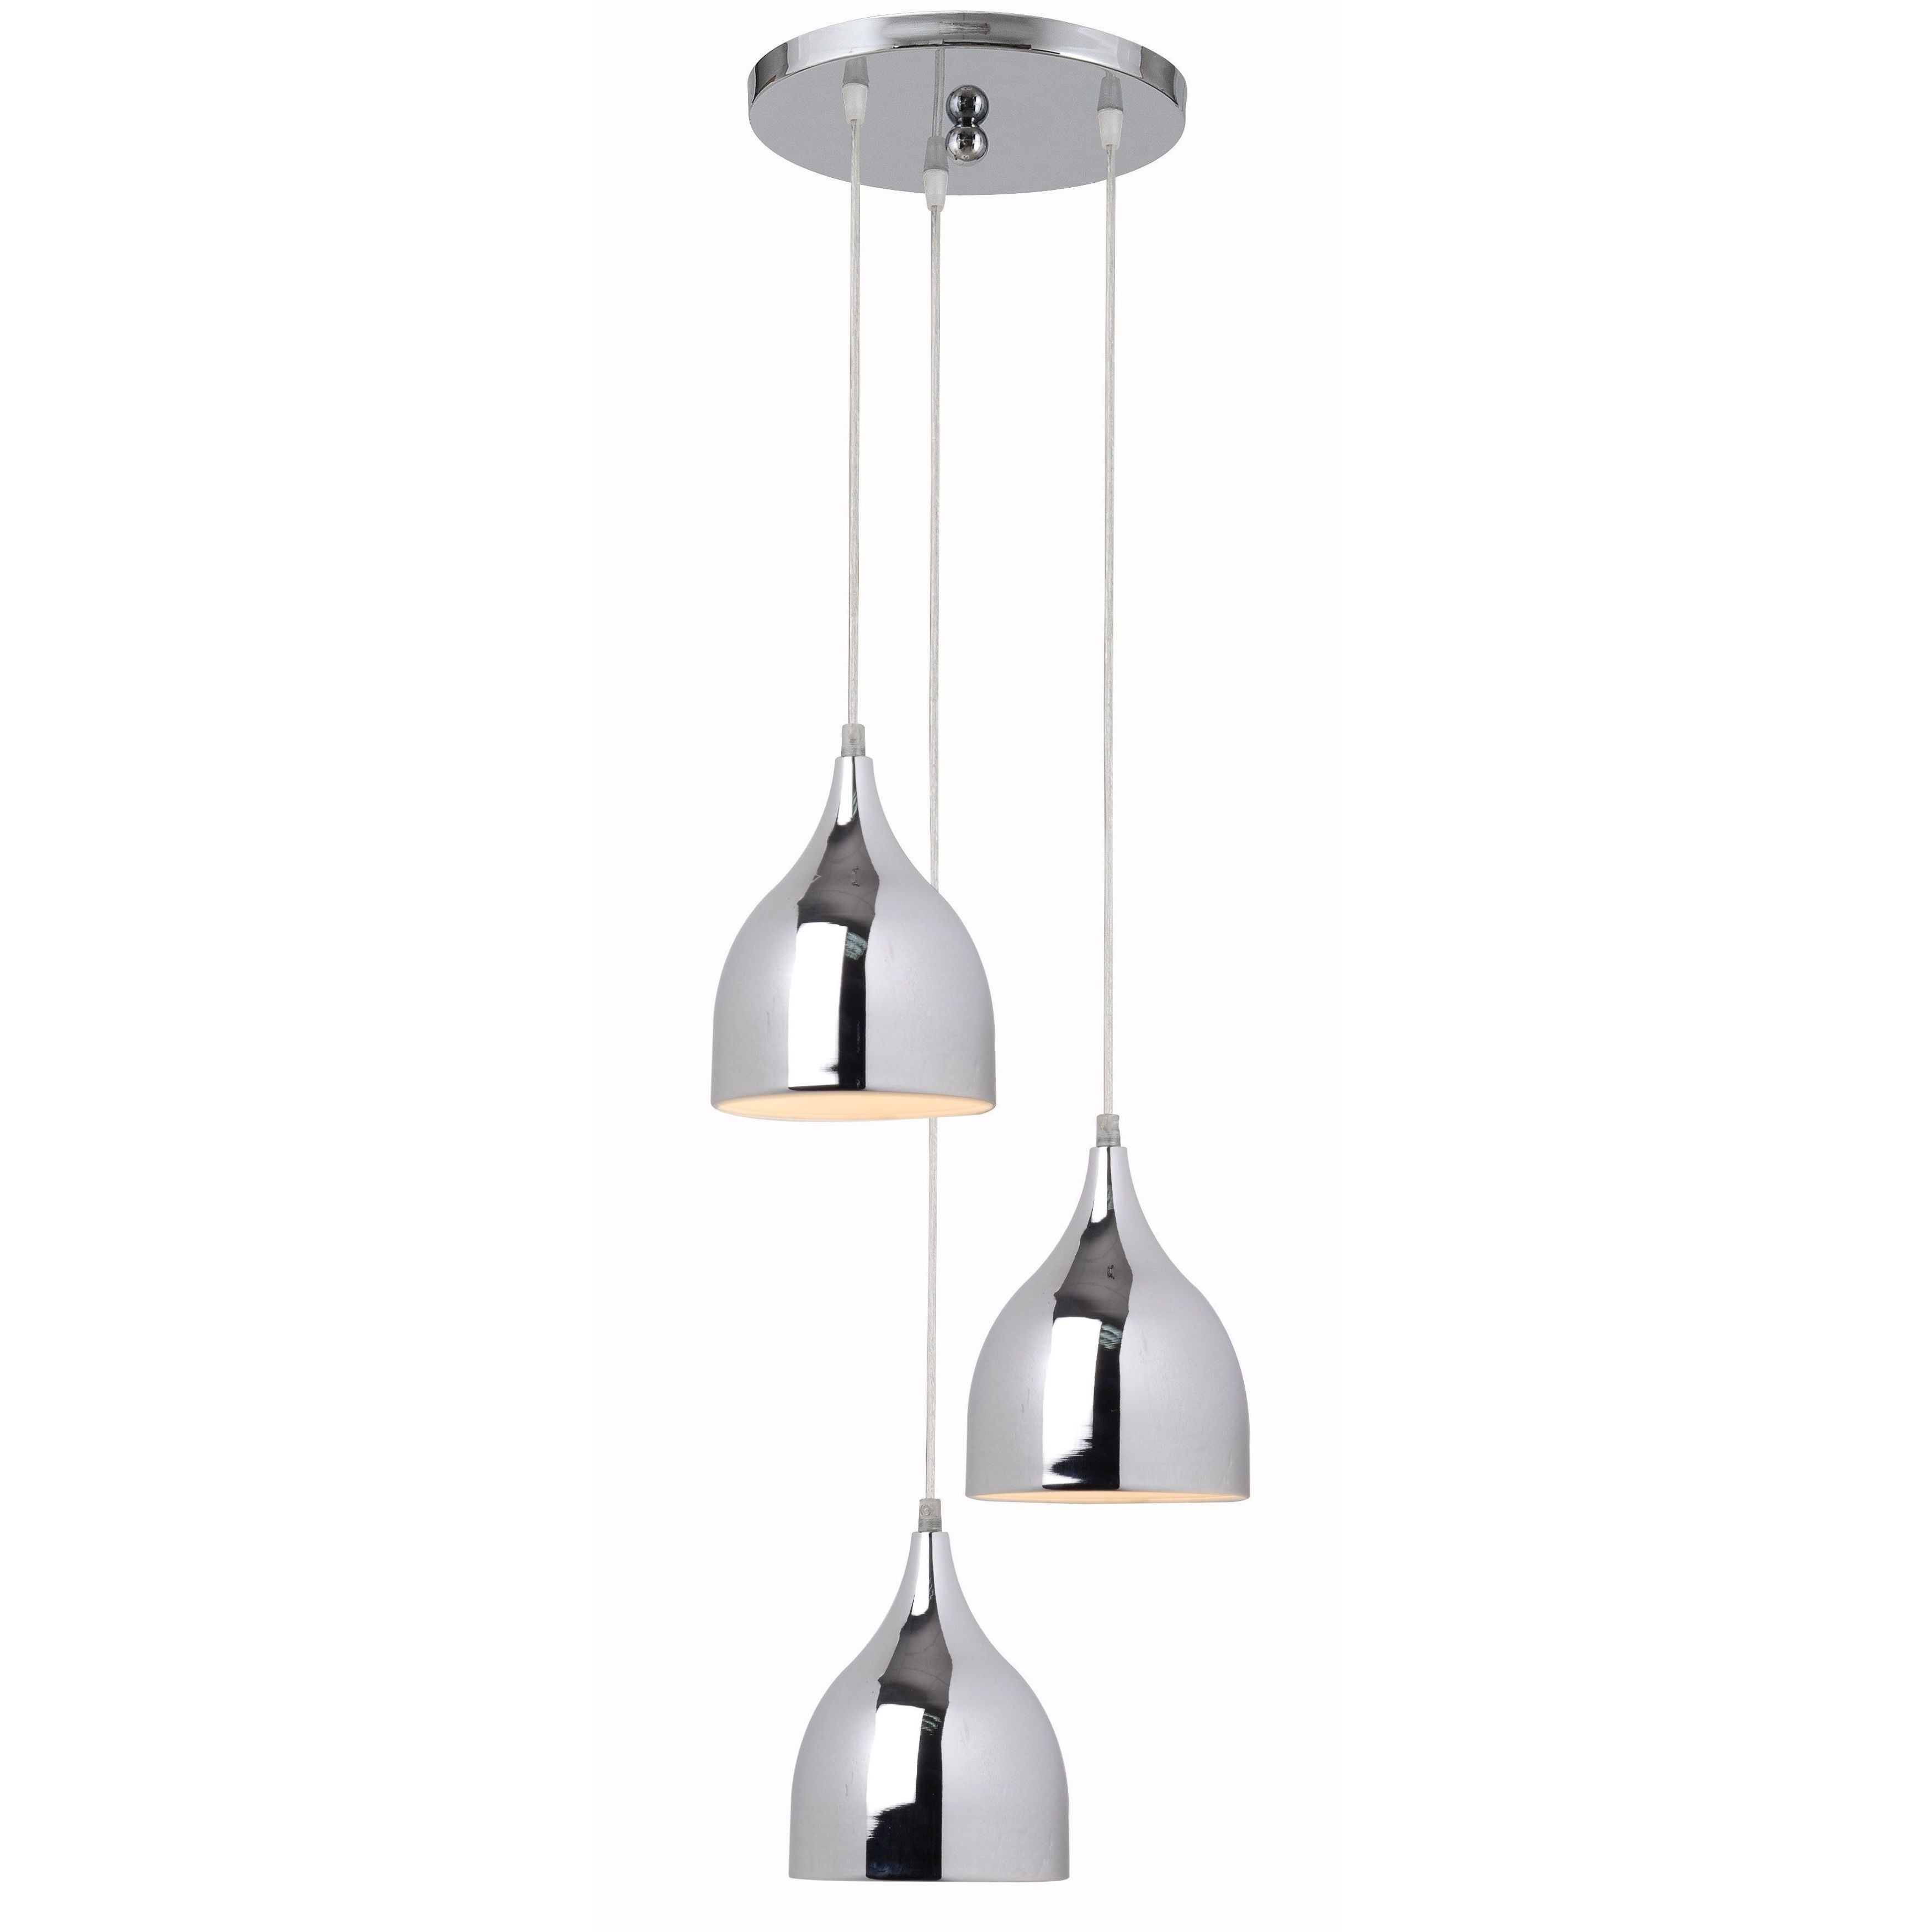 Mini Three-light Pendant Canopy - Free Shipping On Orders Over $45 - Overstock.com - 17122911  sc 1 st  Overstock.com & Mini Three-light Pendant Canopy - Free Shipping On Orders Over $45 ...